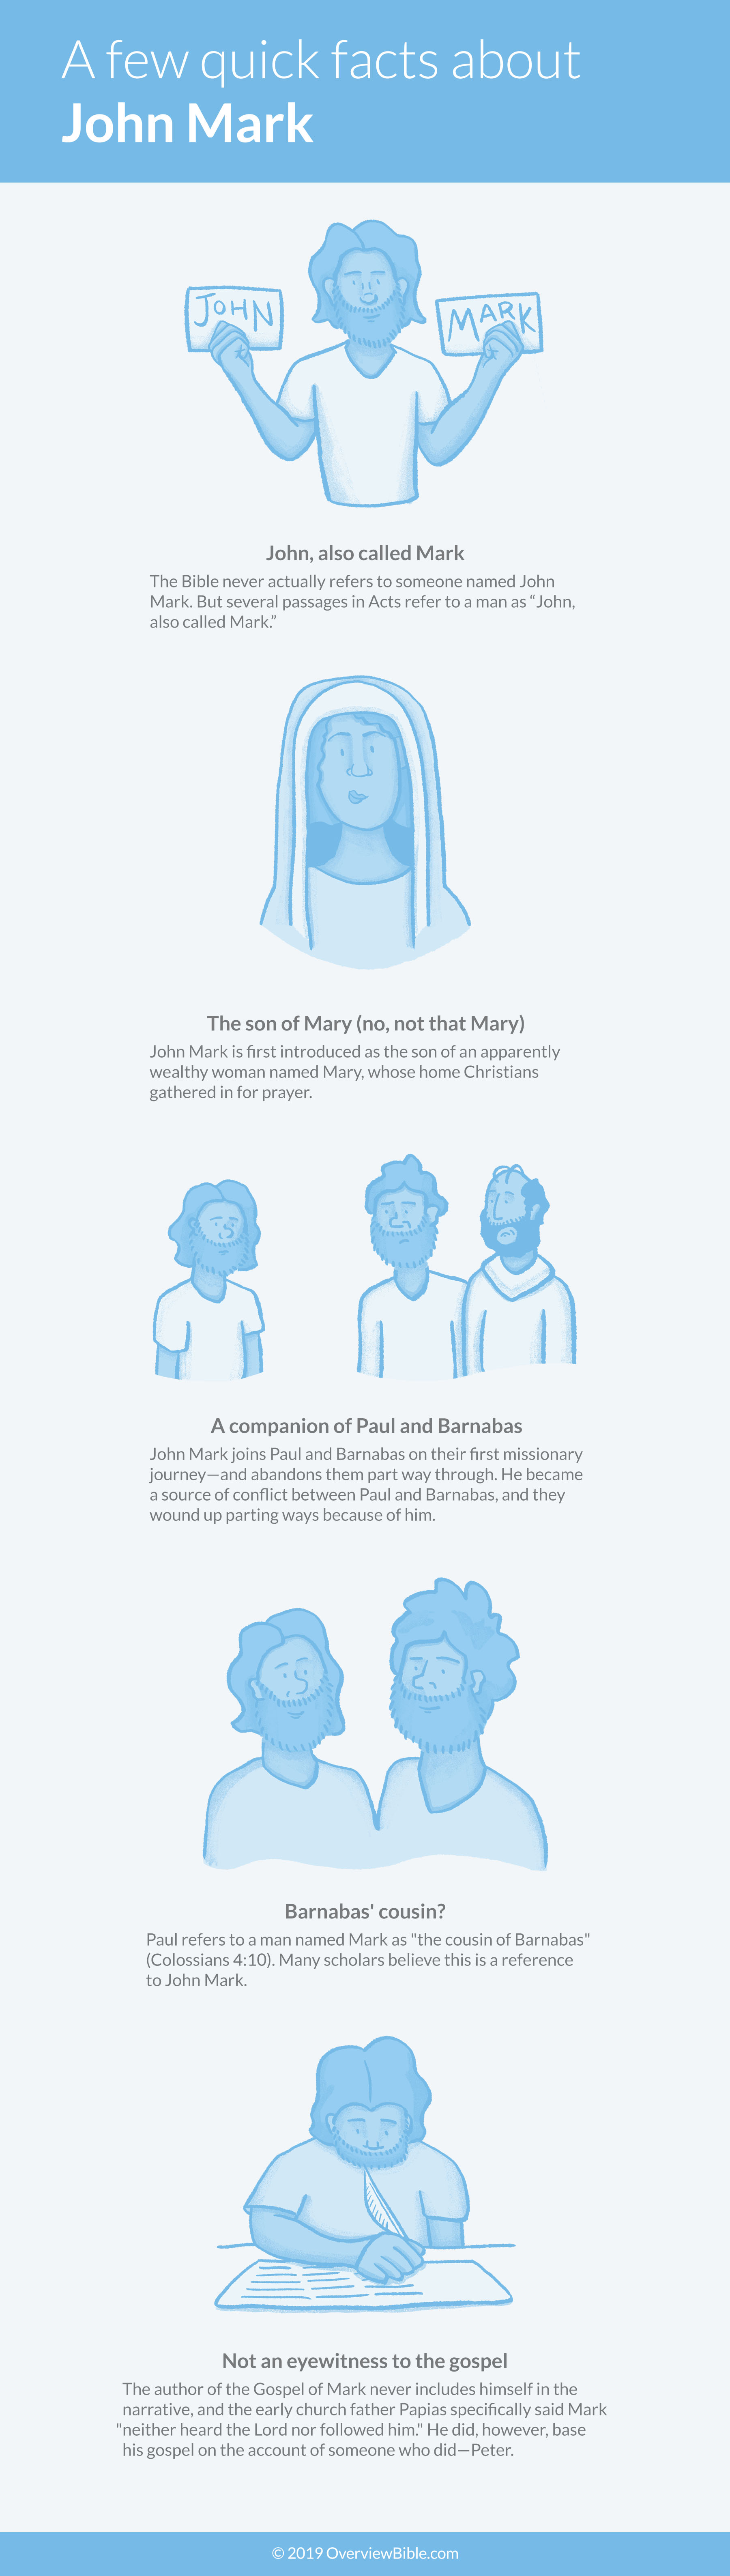 Infographic with facts about John Mark